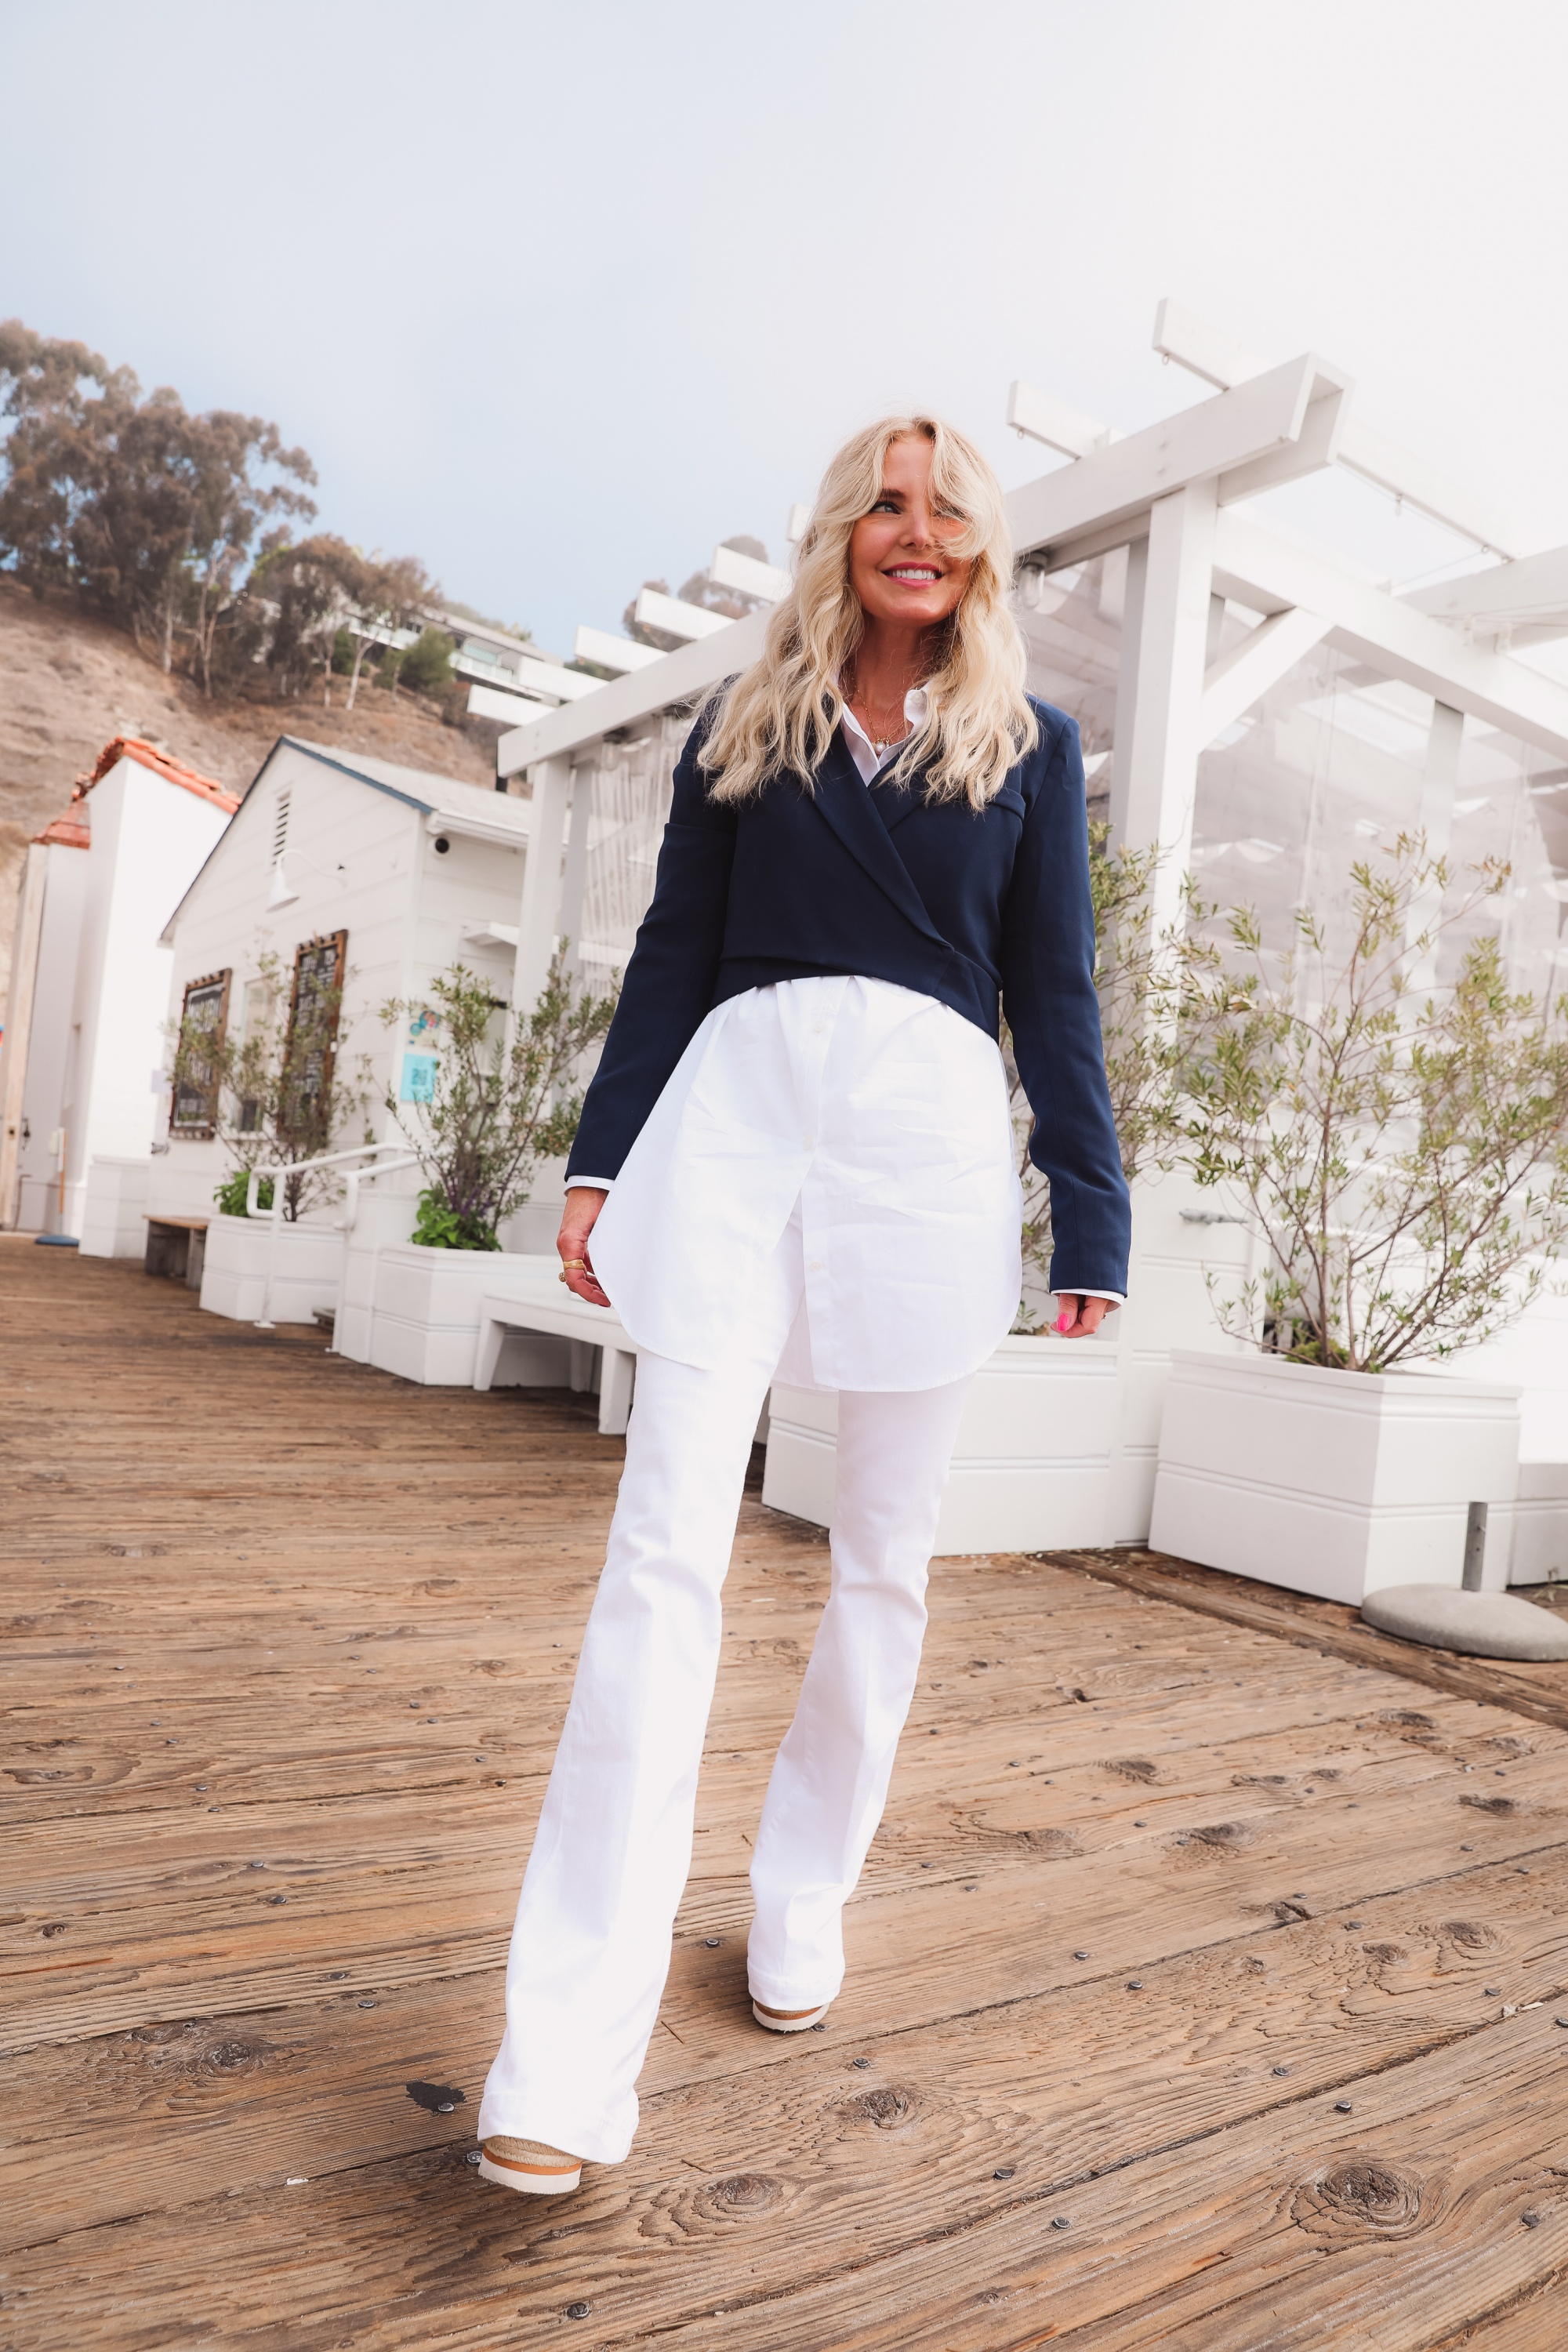 how to wear a cropped blazer, how to wear a cropped blazer over 40, how to wear cropped blazer, wear cropped blazer, navy cropped blazer, 4th & reckless cropped blazer, white open edit oversized button down, see by chloe wedges, white frame flare jeans, erin busbee, cropped blazer outfit